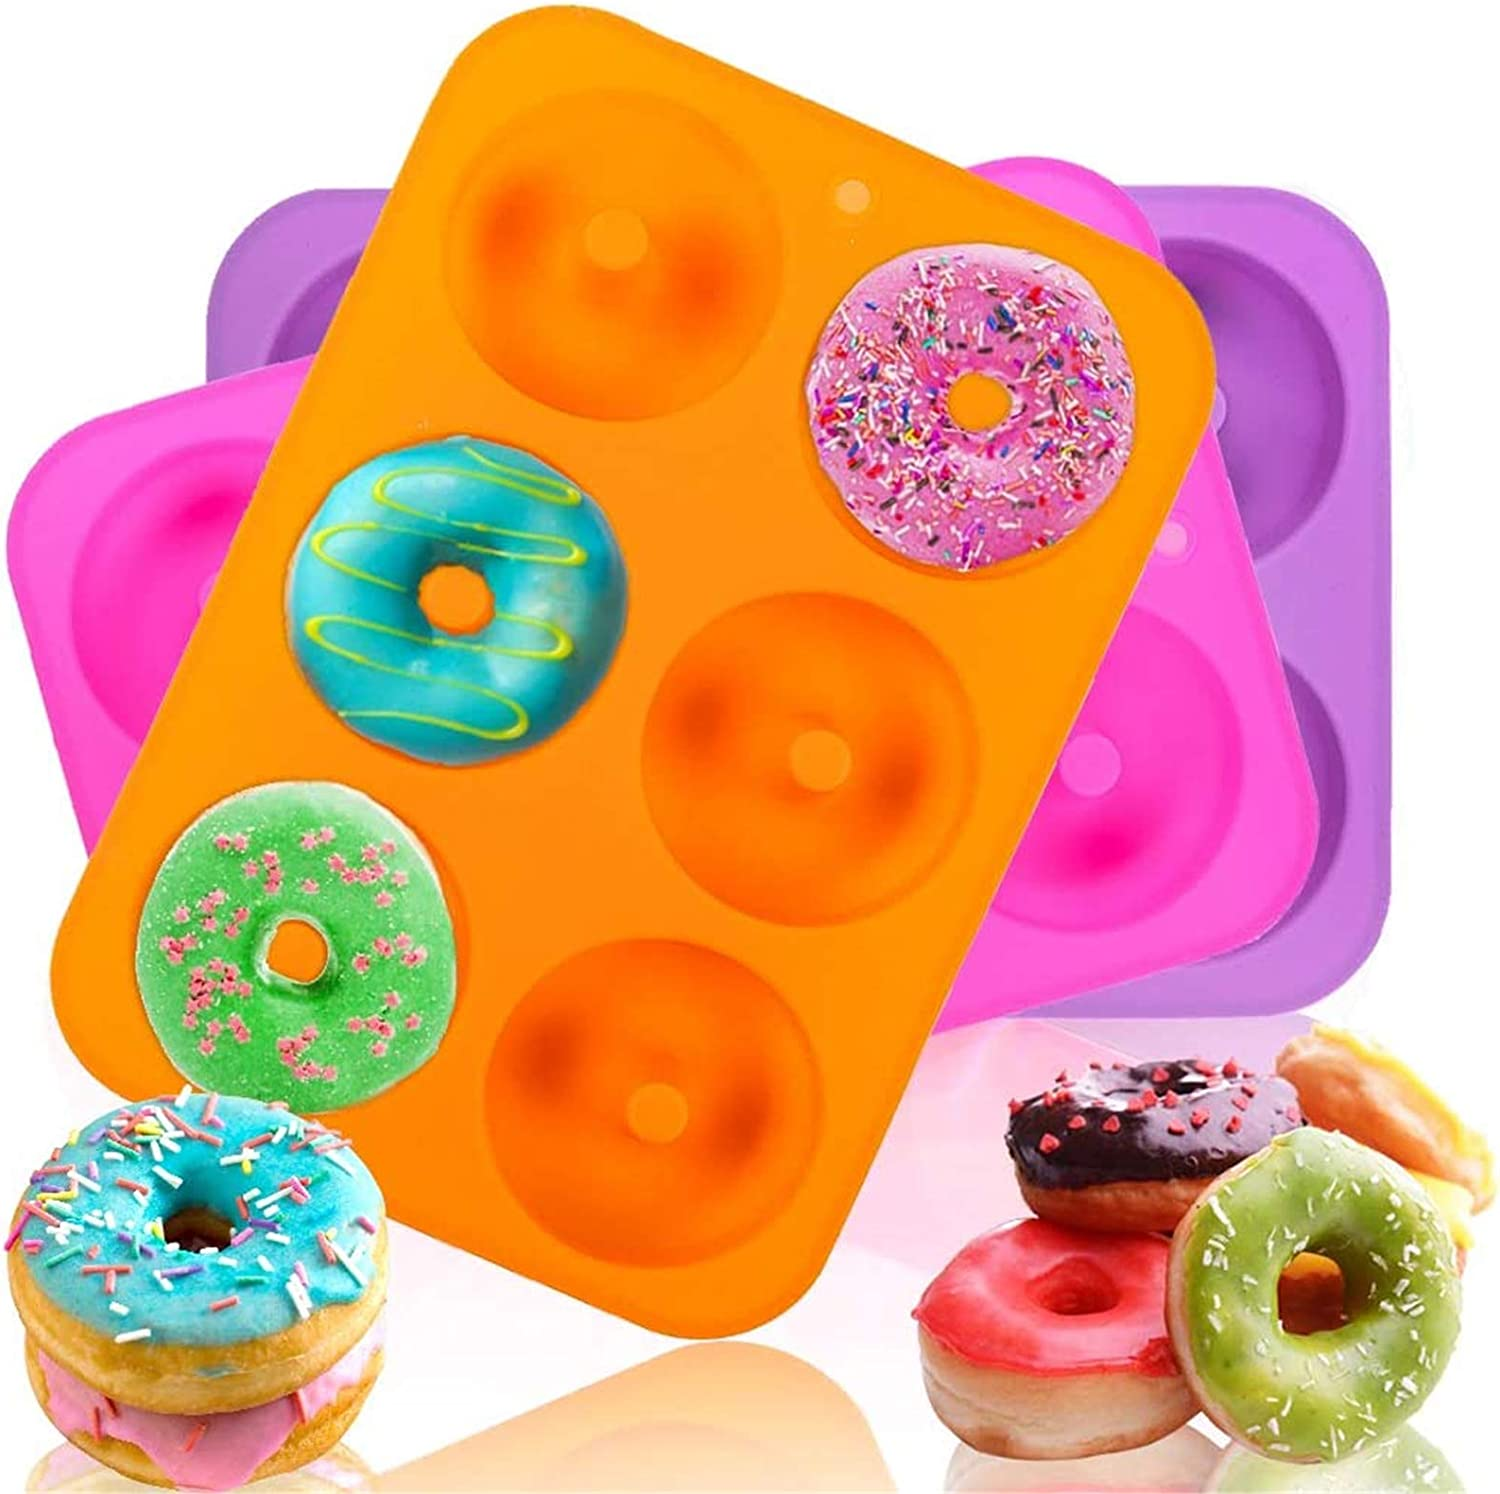 3pcs Donut Pan Mold, Silicone Cake Bagel Baking Doughnuts Mold,Tray Measures 10x7 Inches